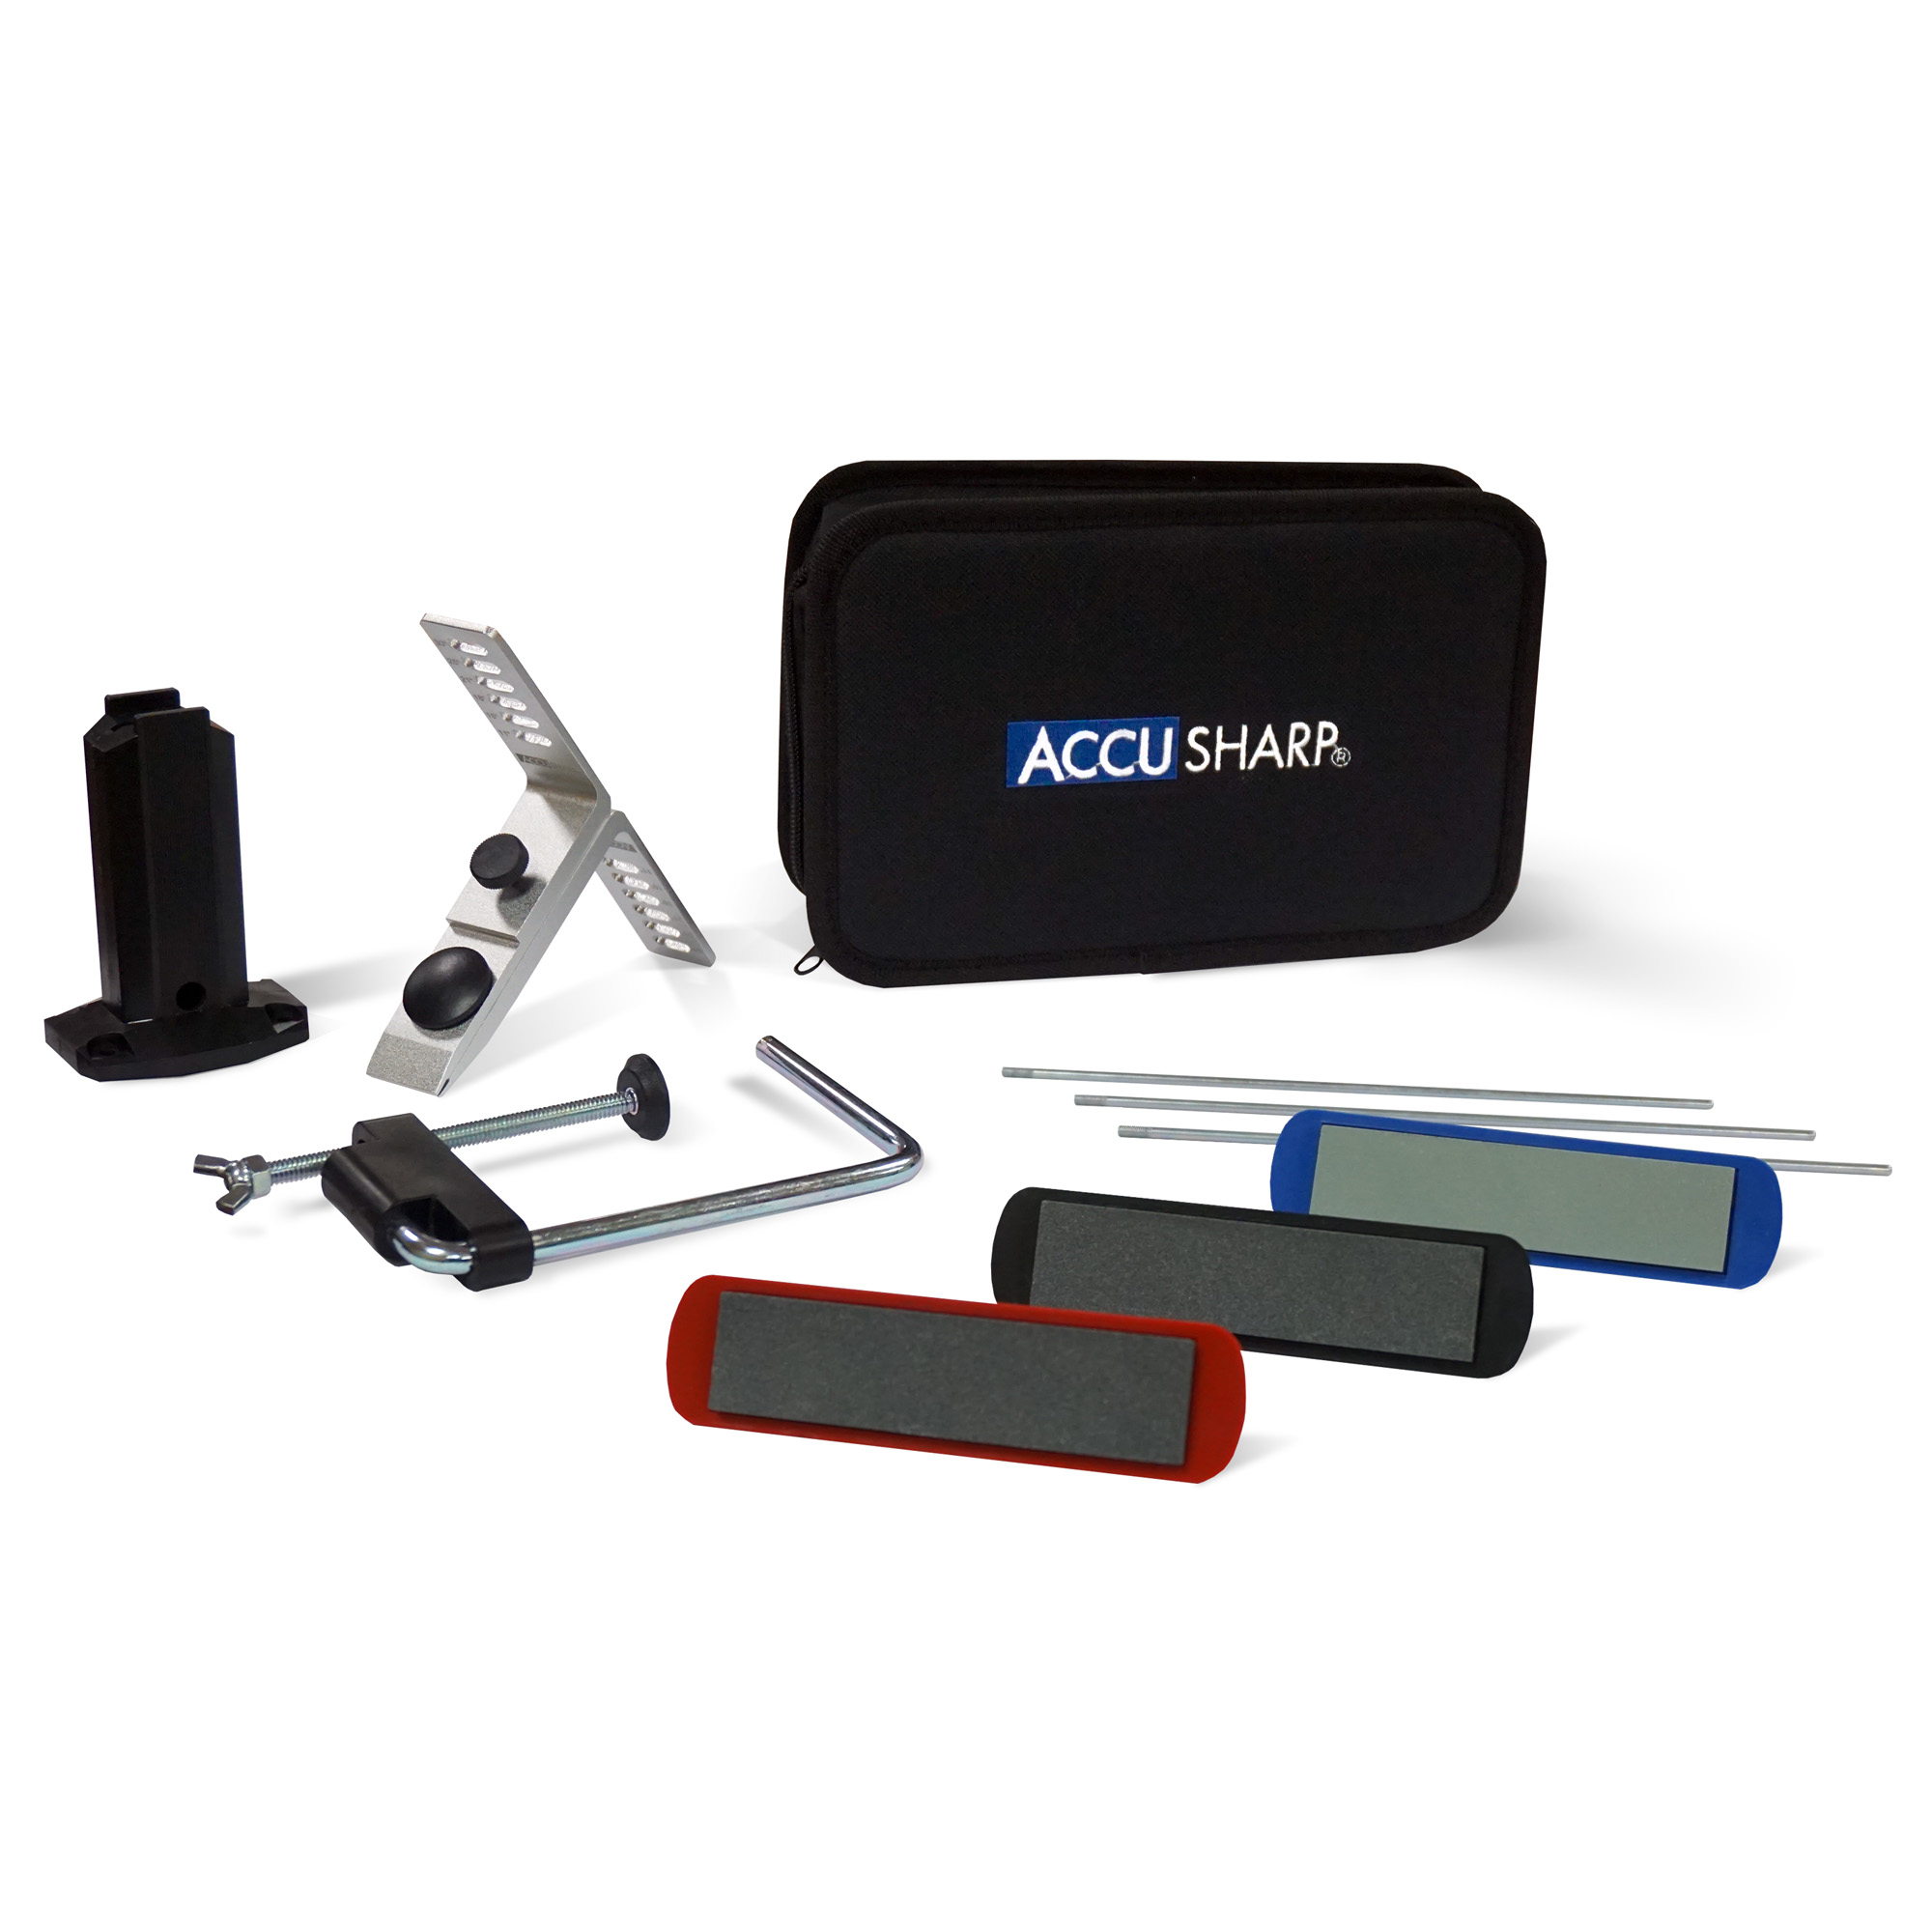 Accusharp Precision 3 Stone Kit